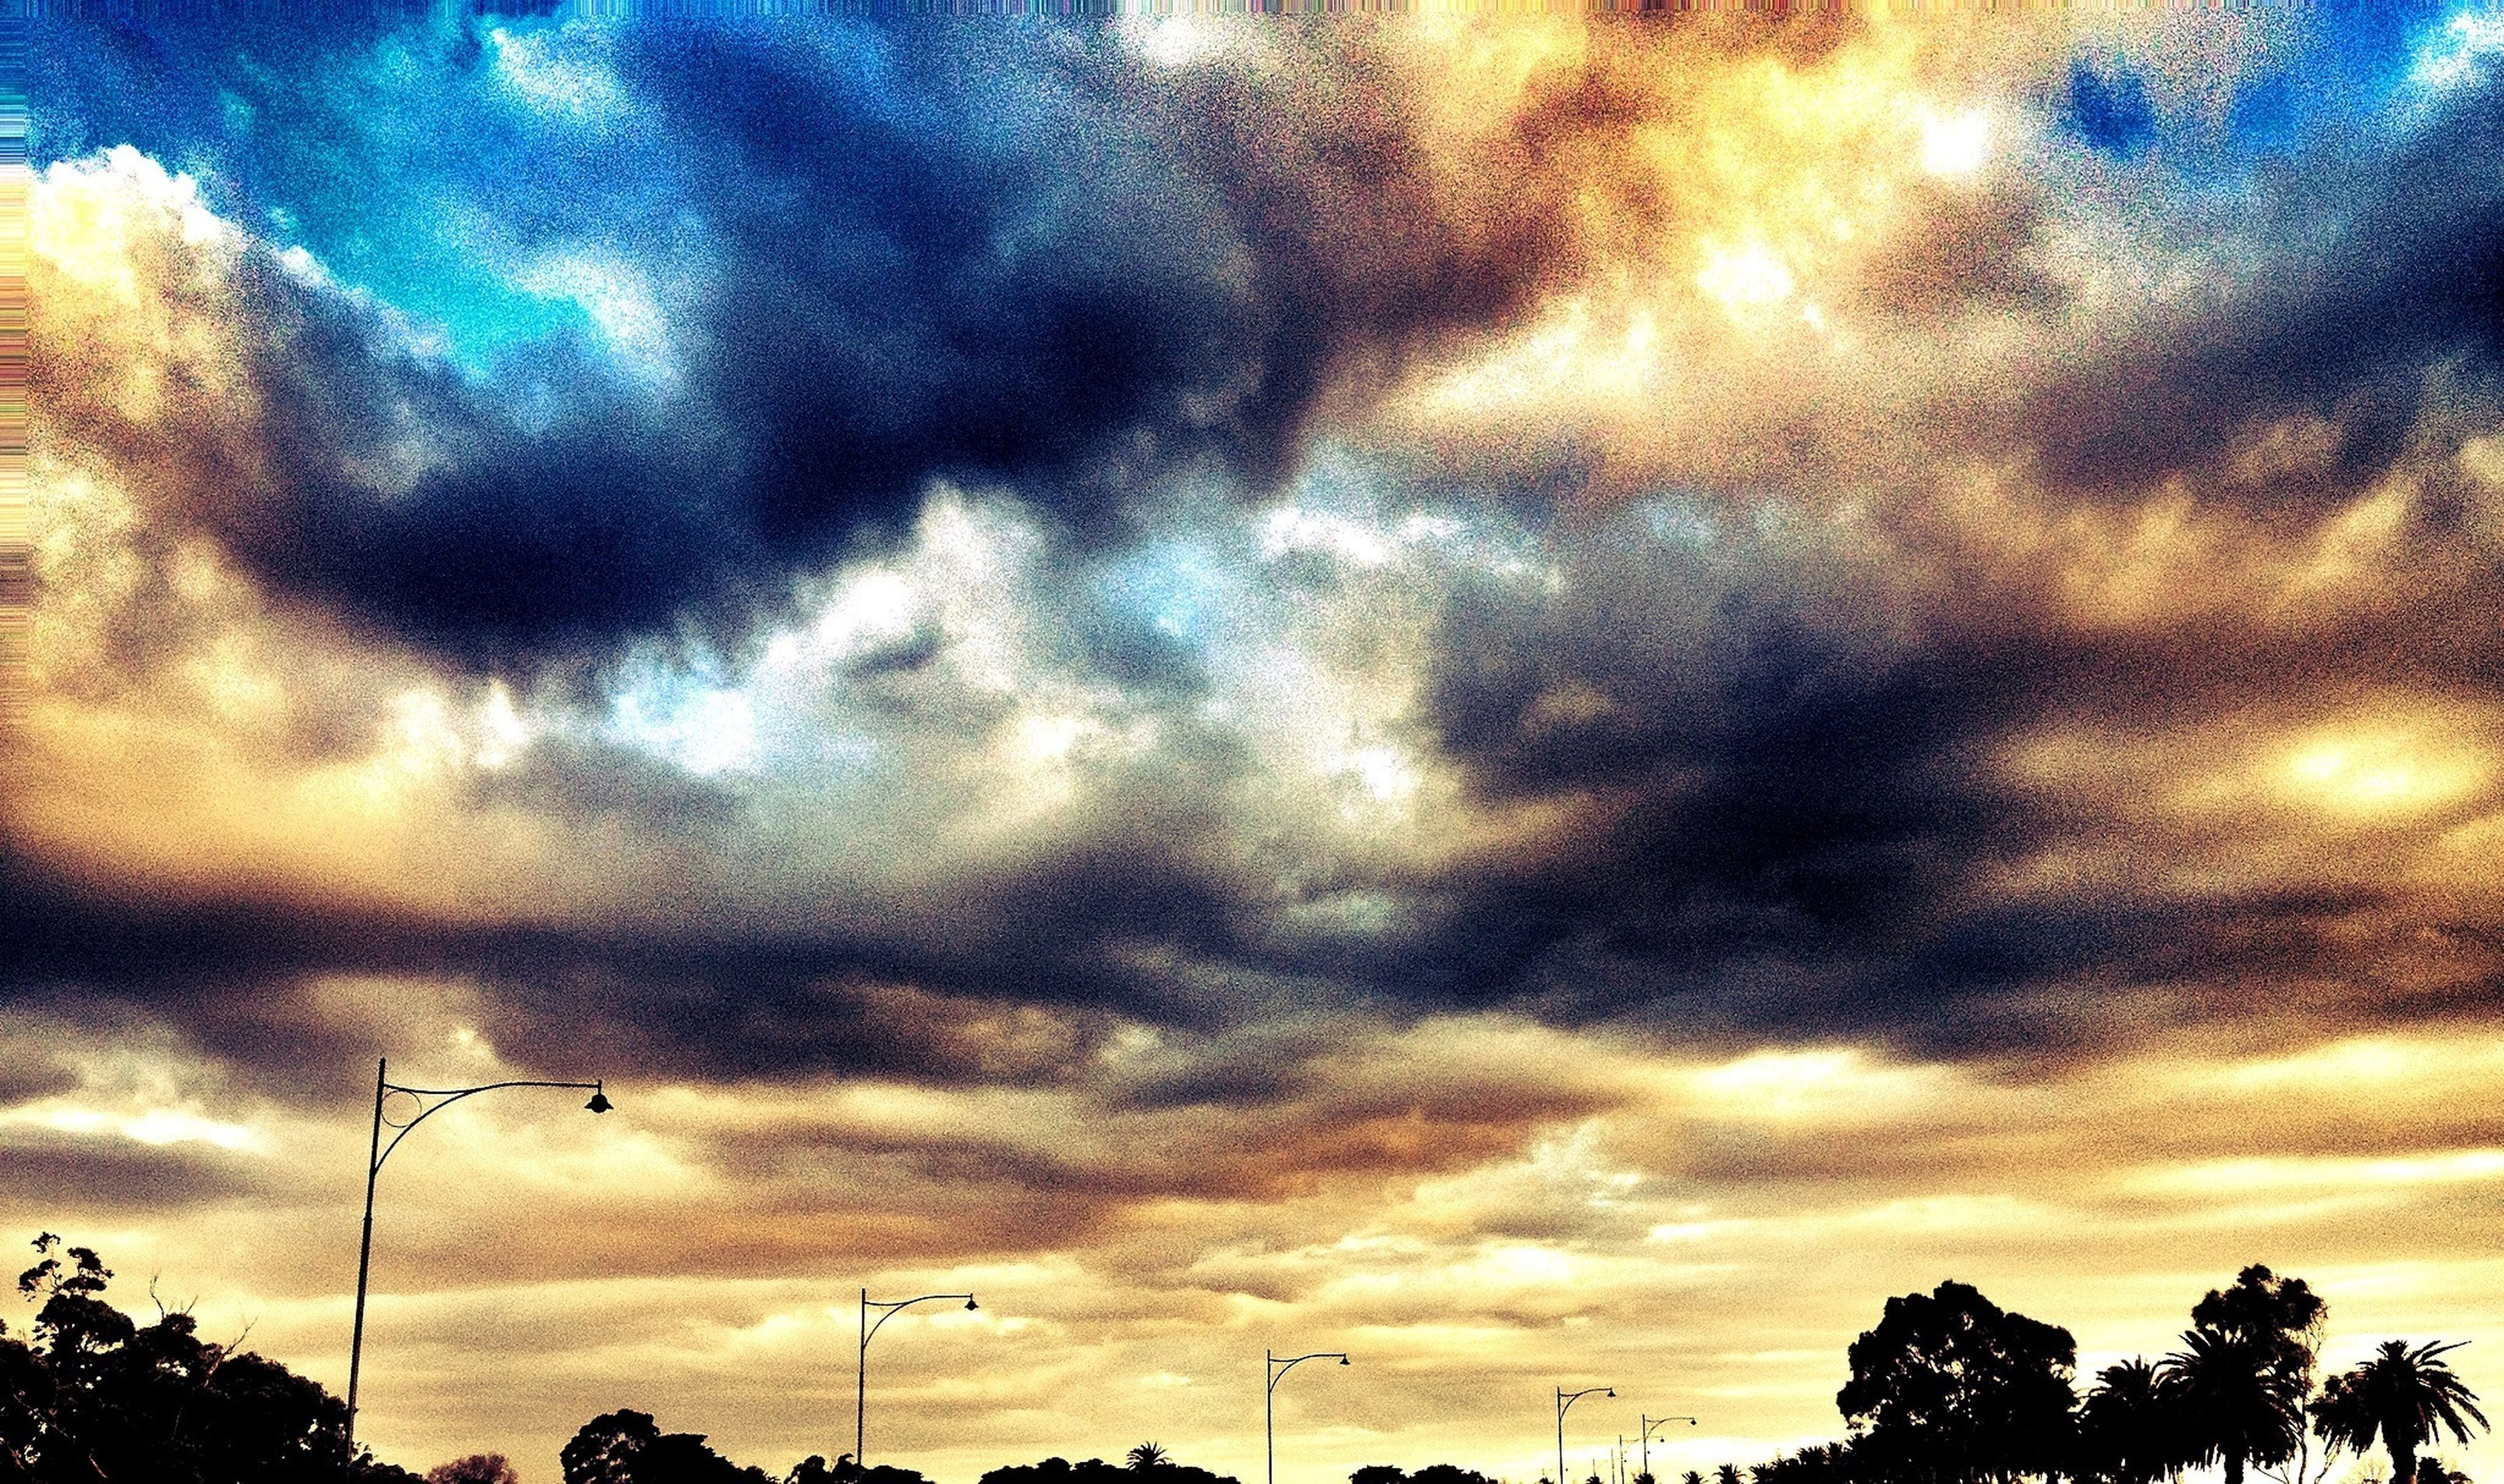 sky, cloud - sky, low angle view, silhouette, cloudy, tree, sunset, beauty in nature, scenics, dramatic sky, tranquility, weather, tranquil scene, nature, dusk, cloud, overcast, power line, street light, electricity pylon